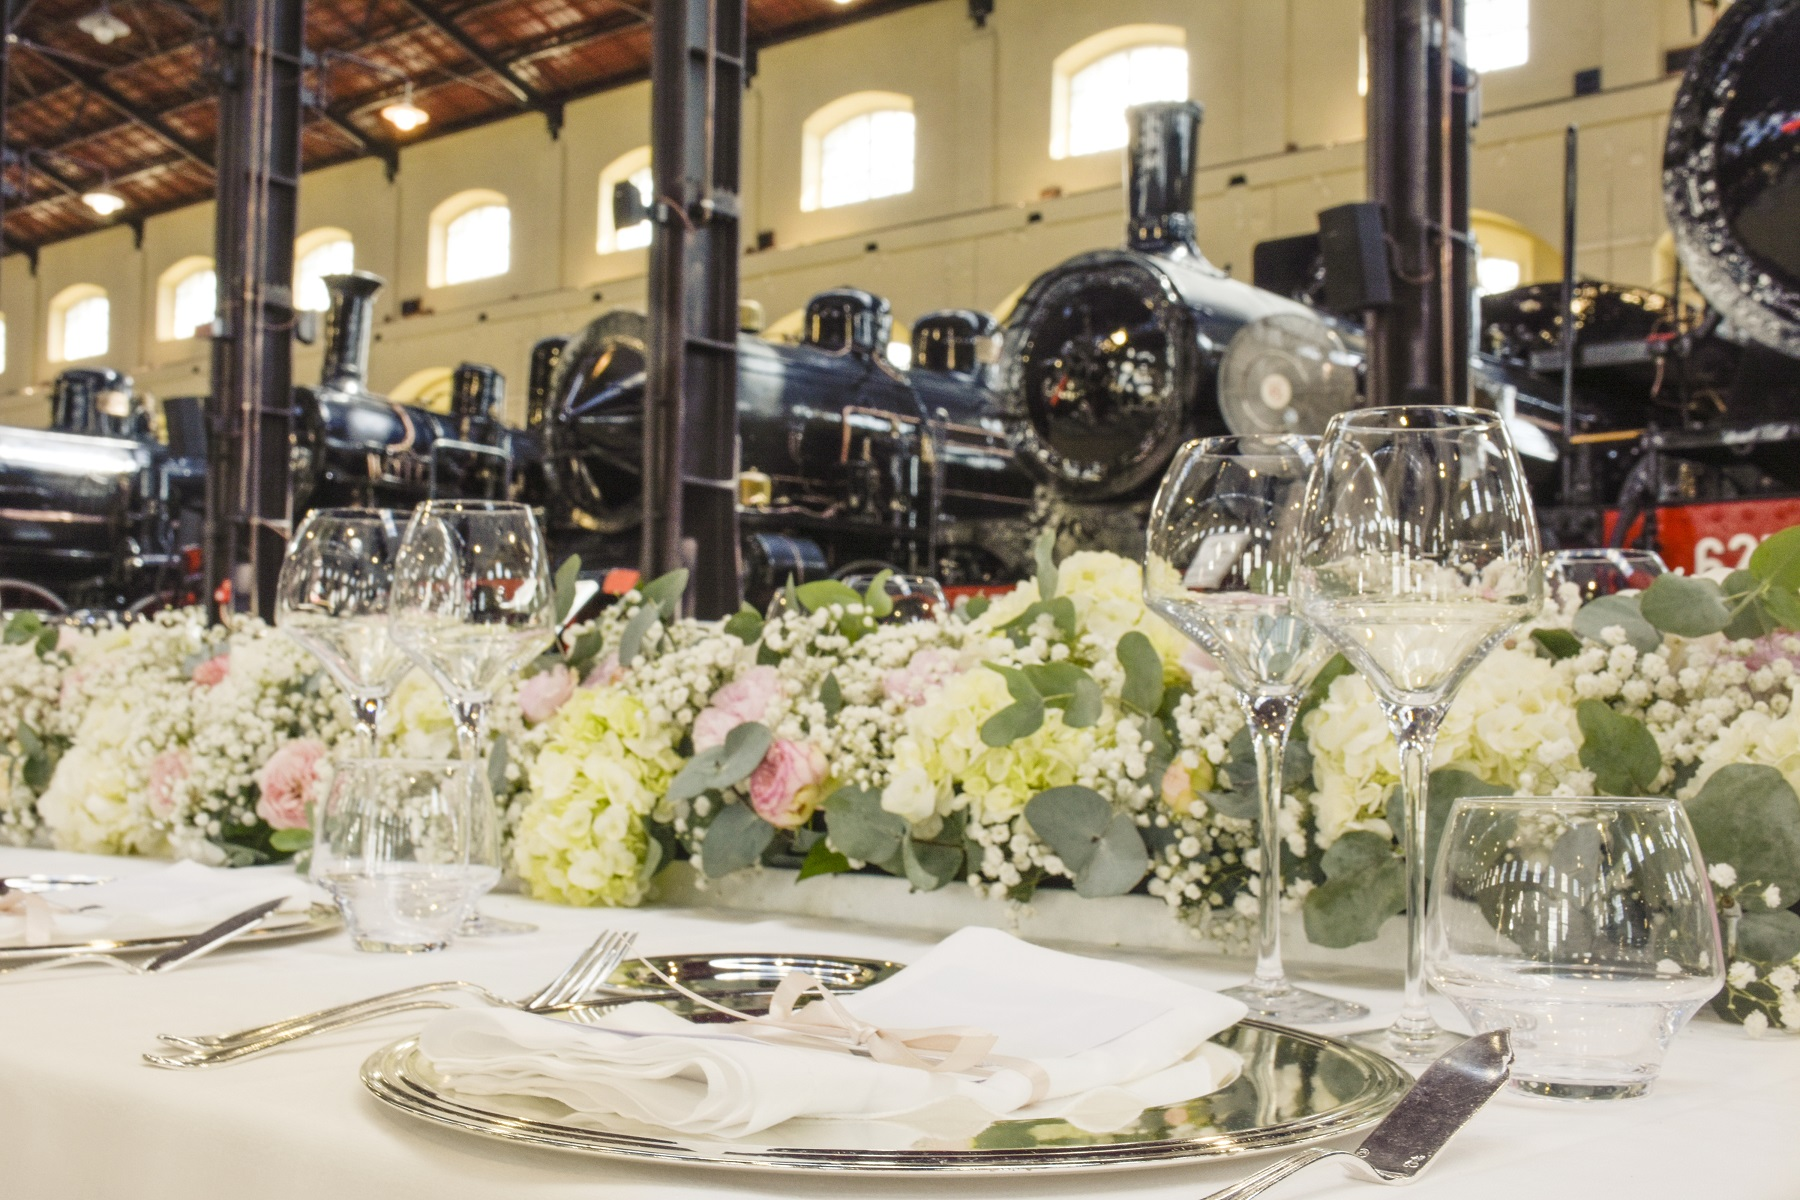 Wedding at the railway museum